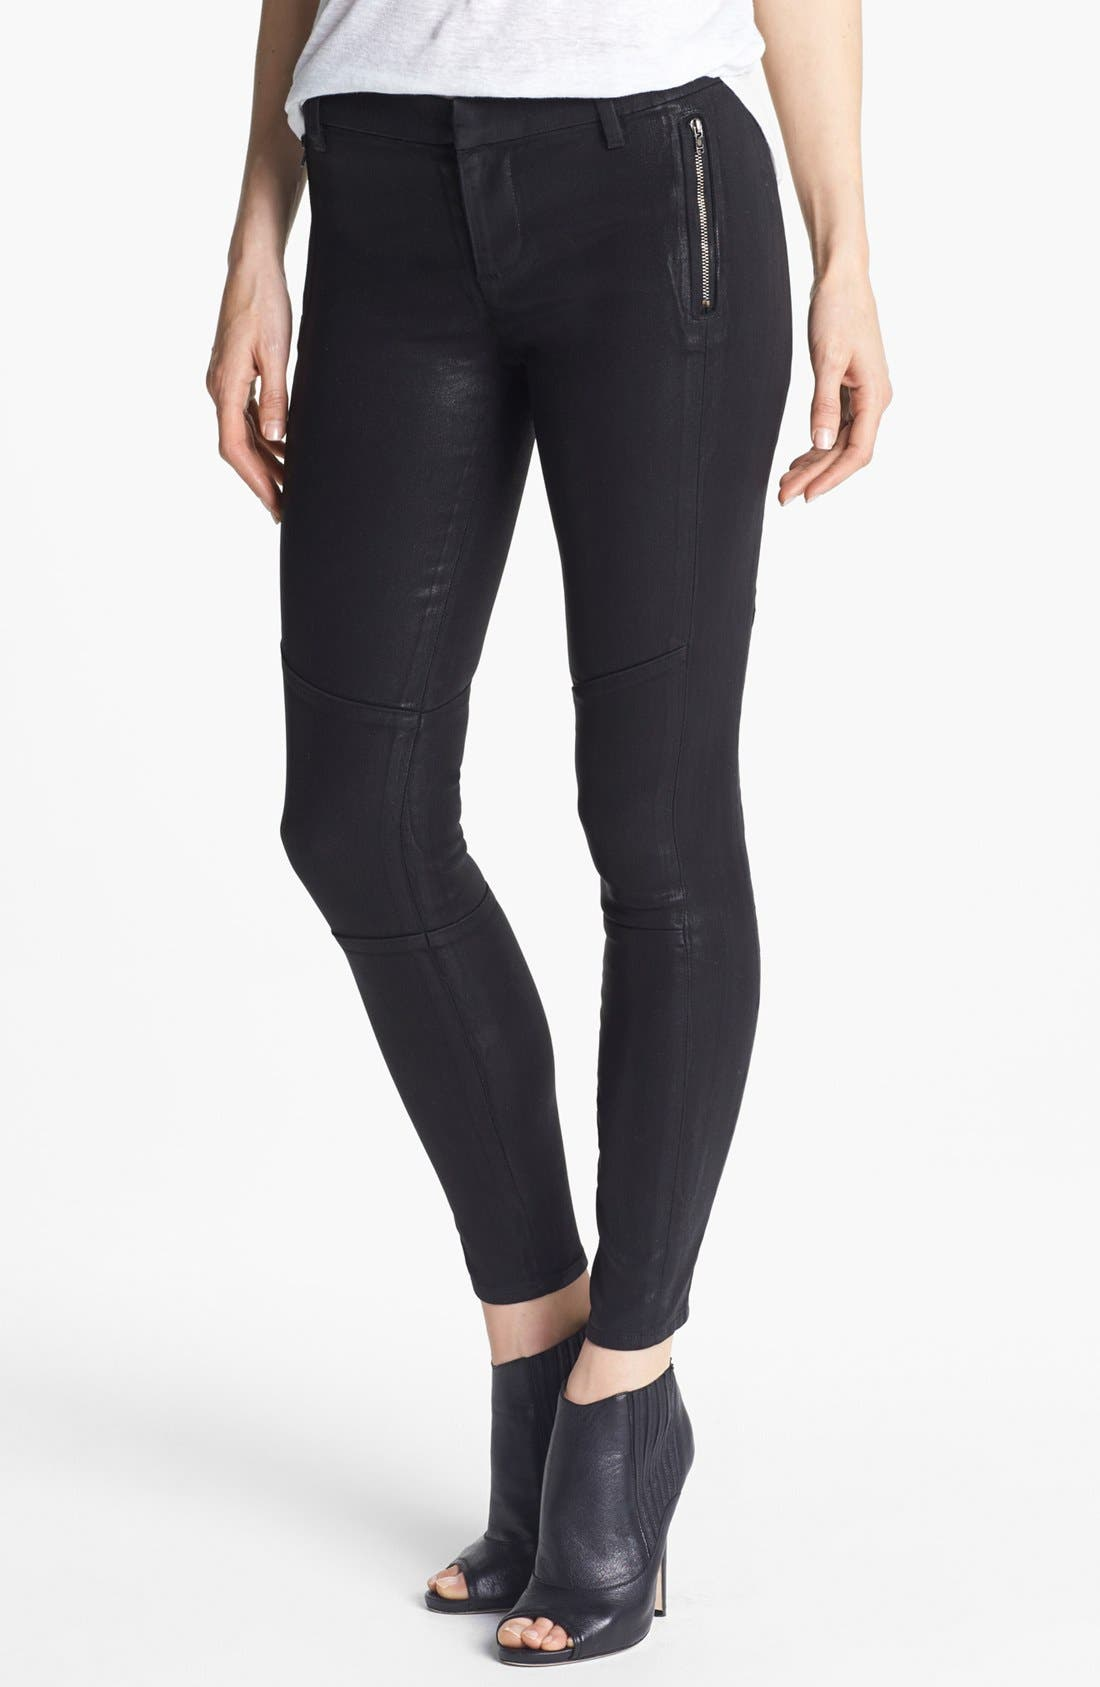 Alternate Image 1 Selected - J Brand '8046 Tabitha' Mid Rise Coated Skinny Jeans (Lacquered Black Quartz)